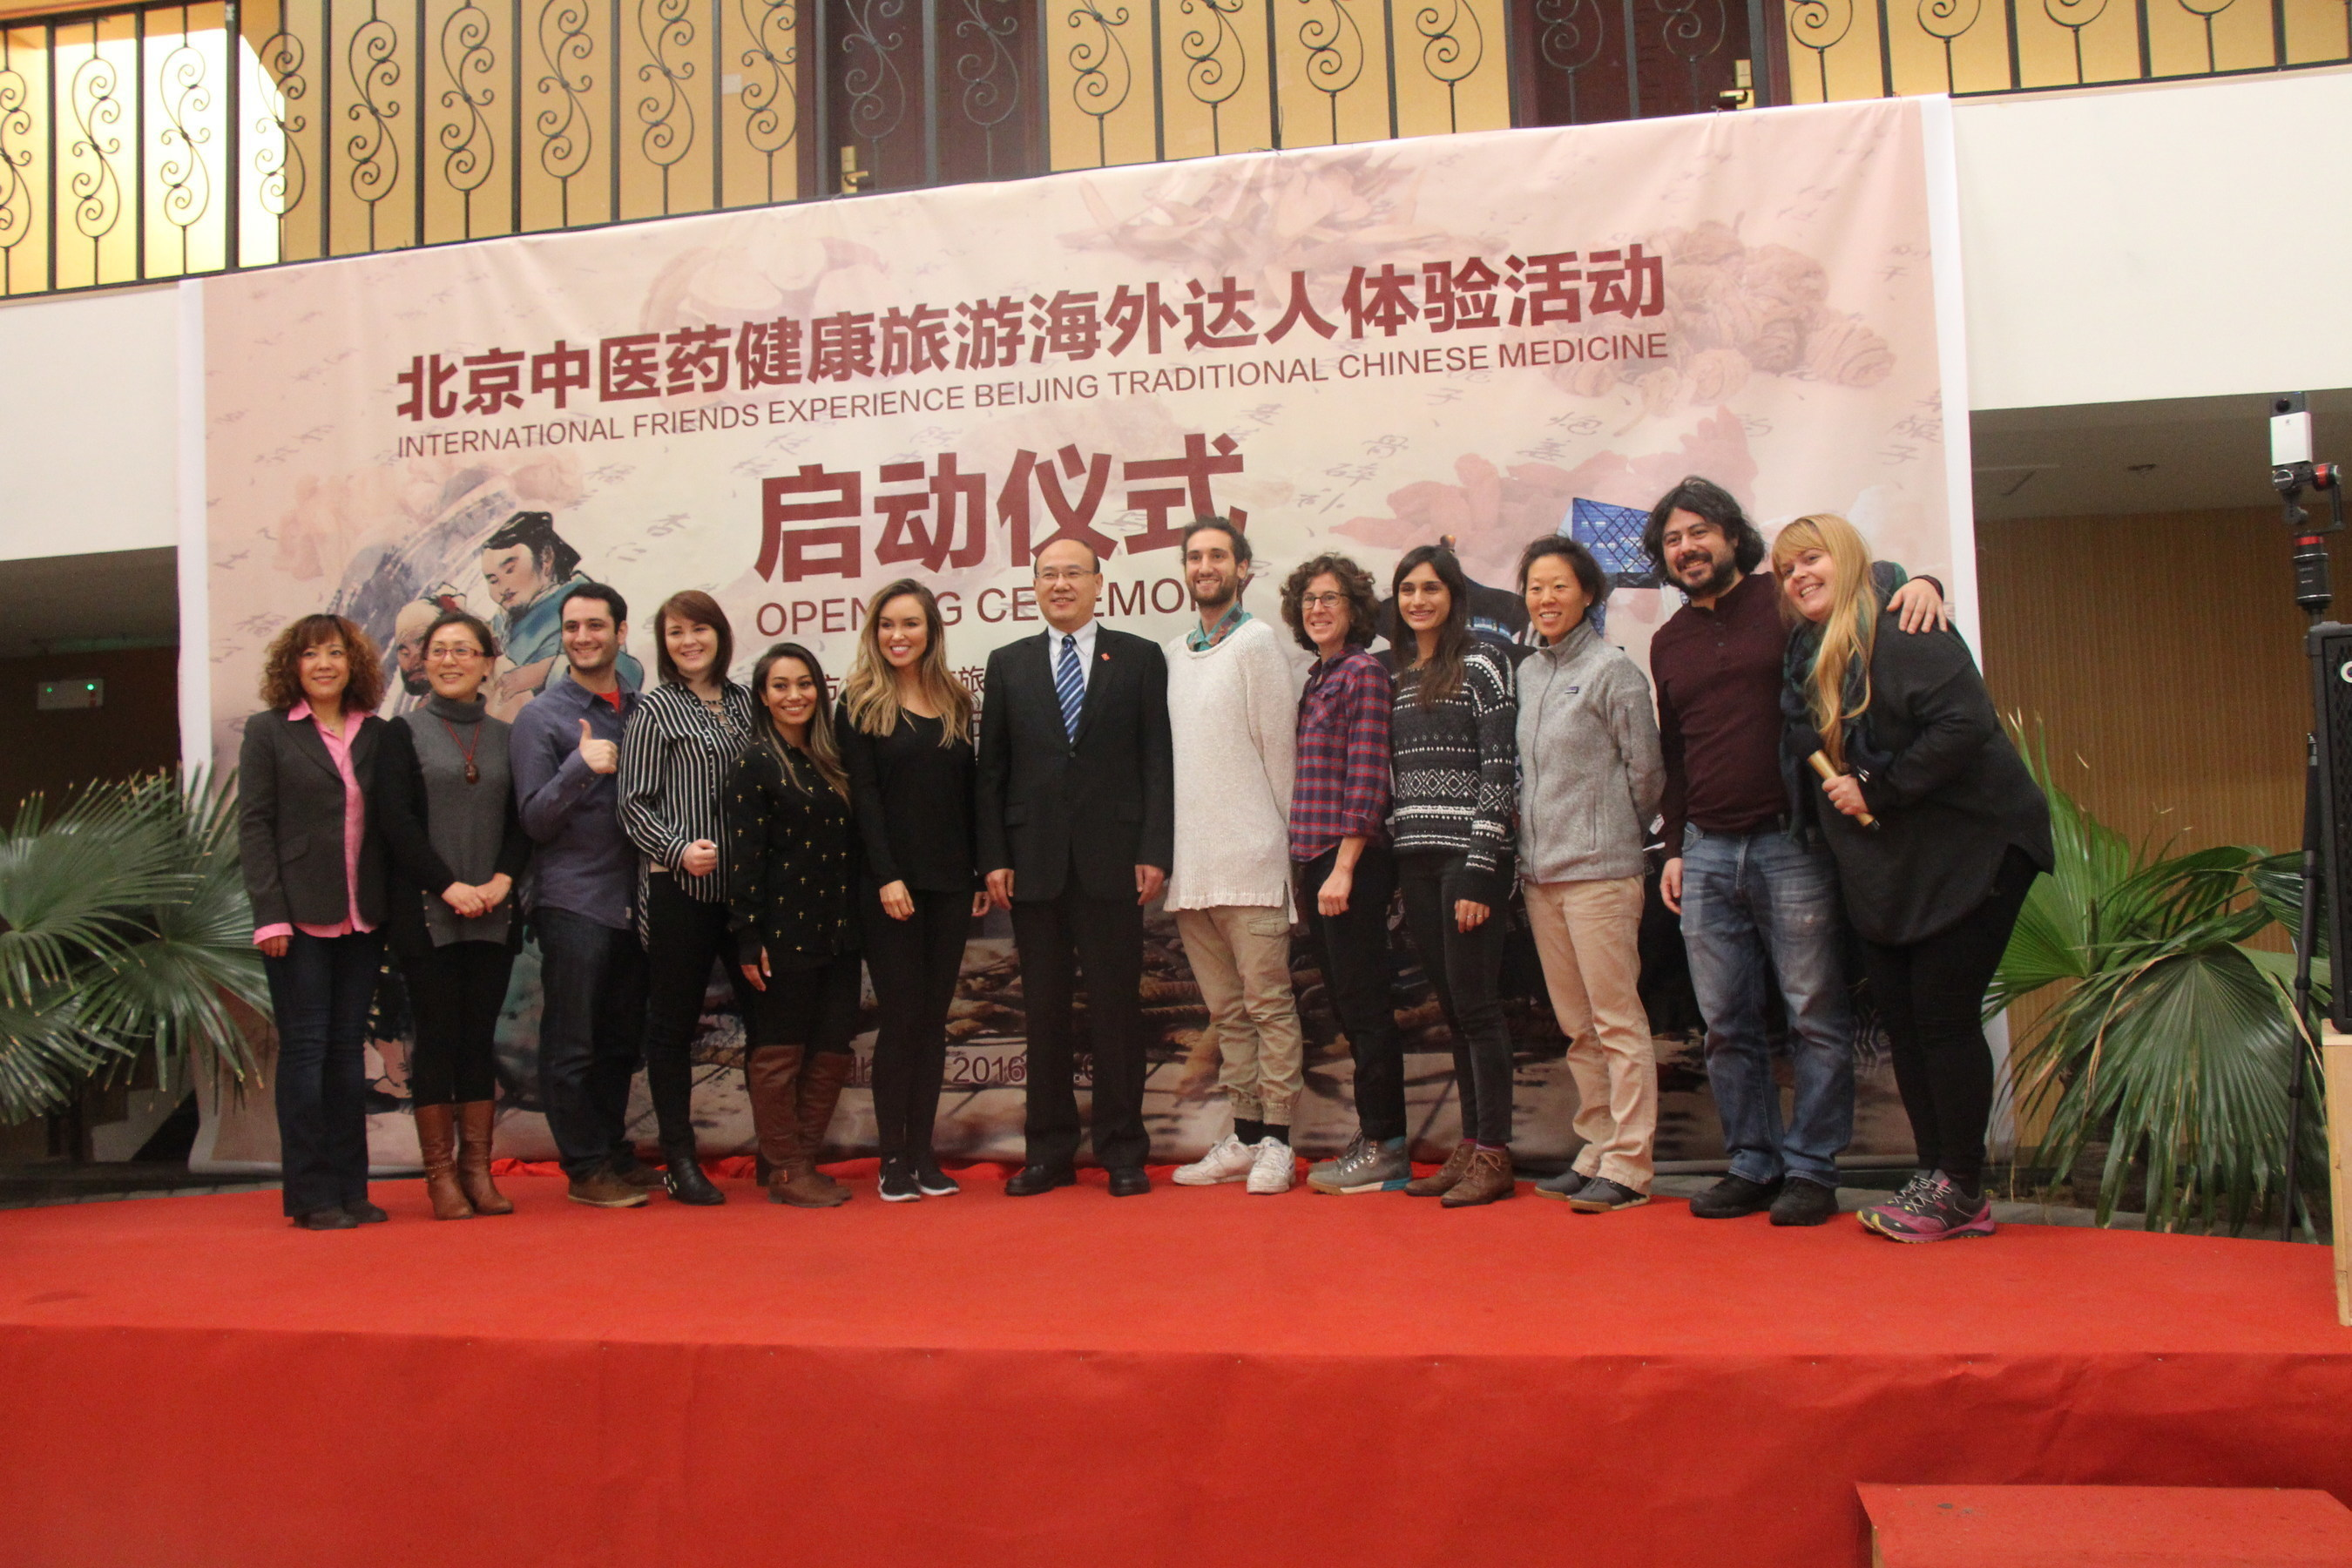 Hosts and guests at the welcoming ceremony